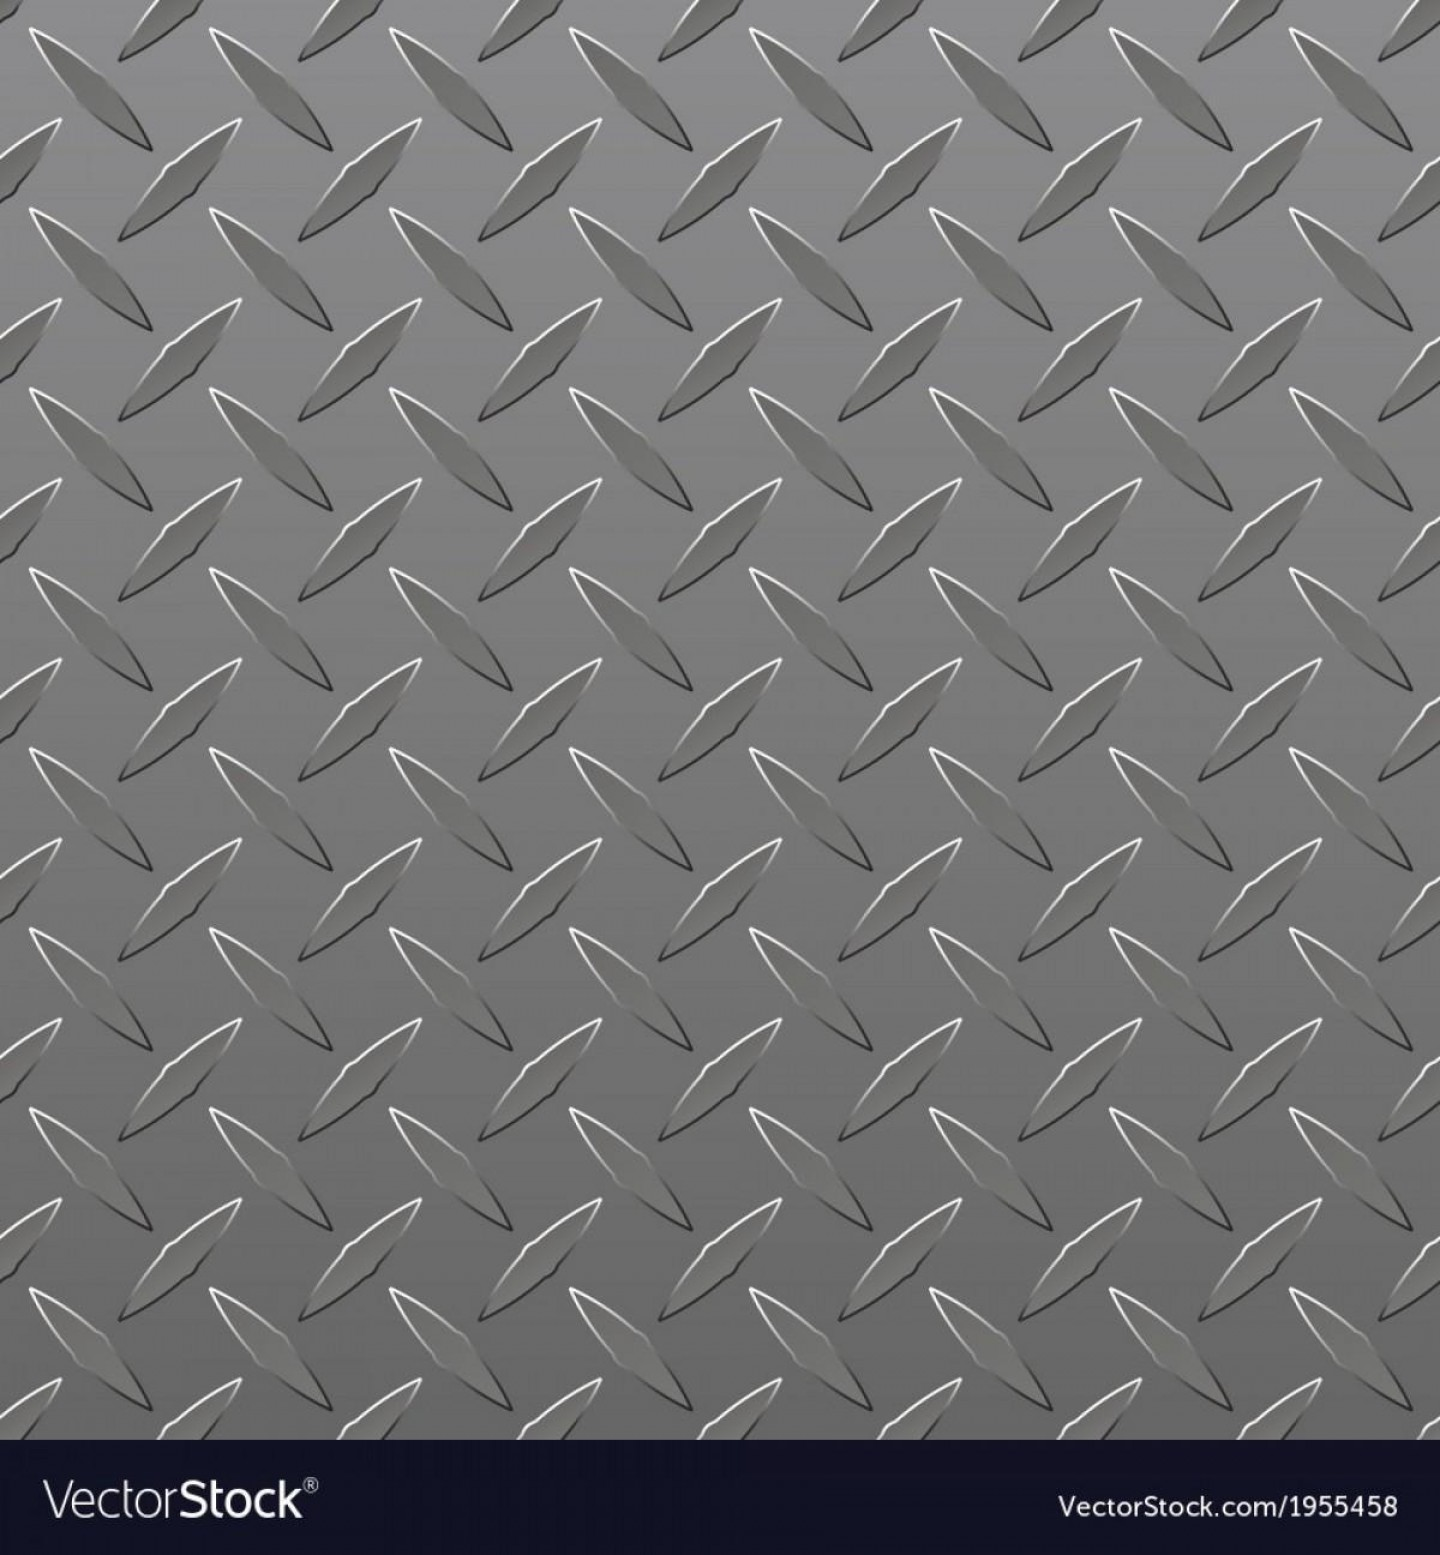 Tread Plate Vector: Hd Diamond Plate Pattern Psd Vector Drawing